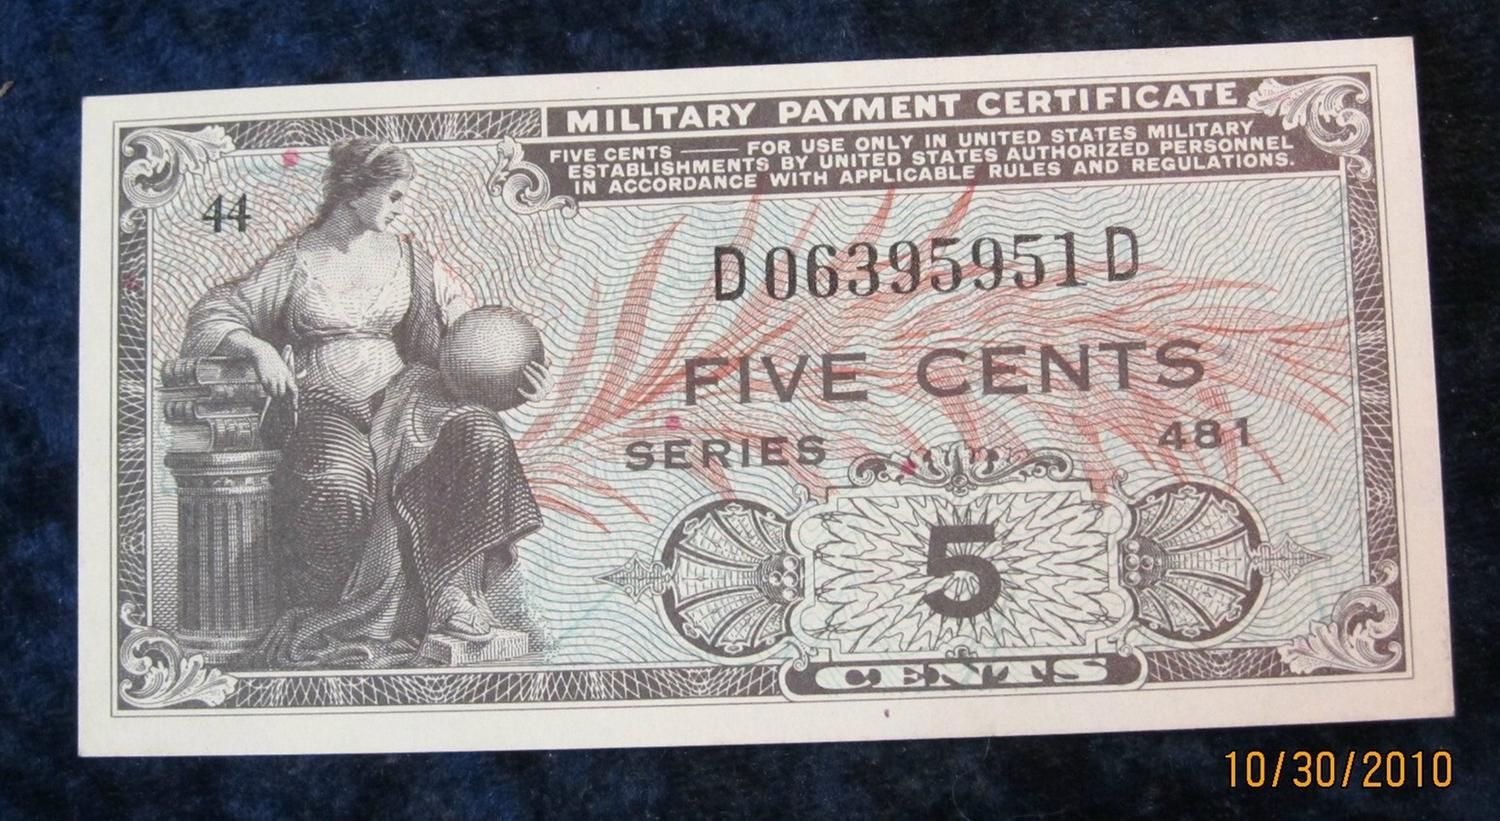 52. Series 481 Military Payment Certificate Five Cents. Cu